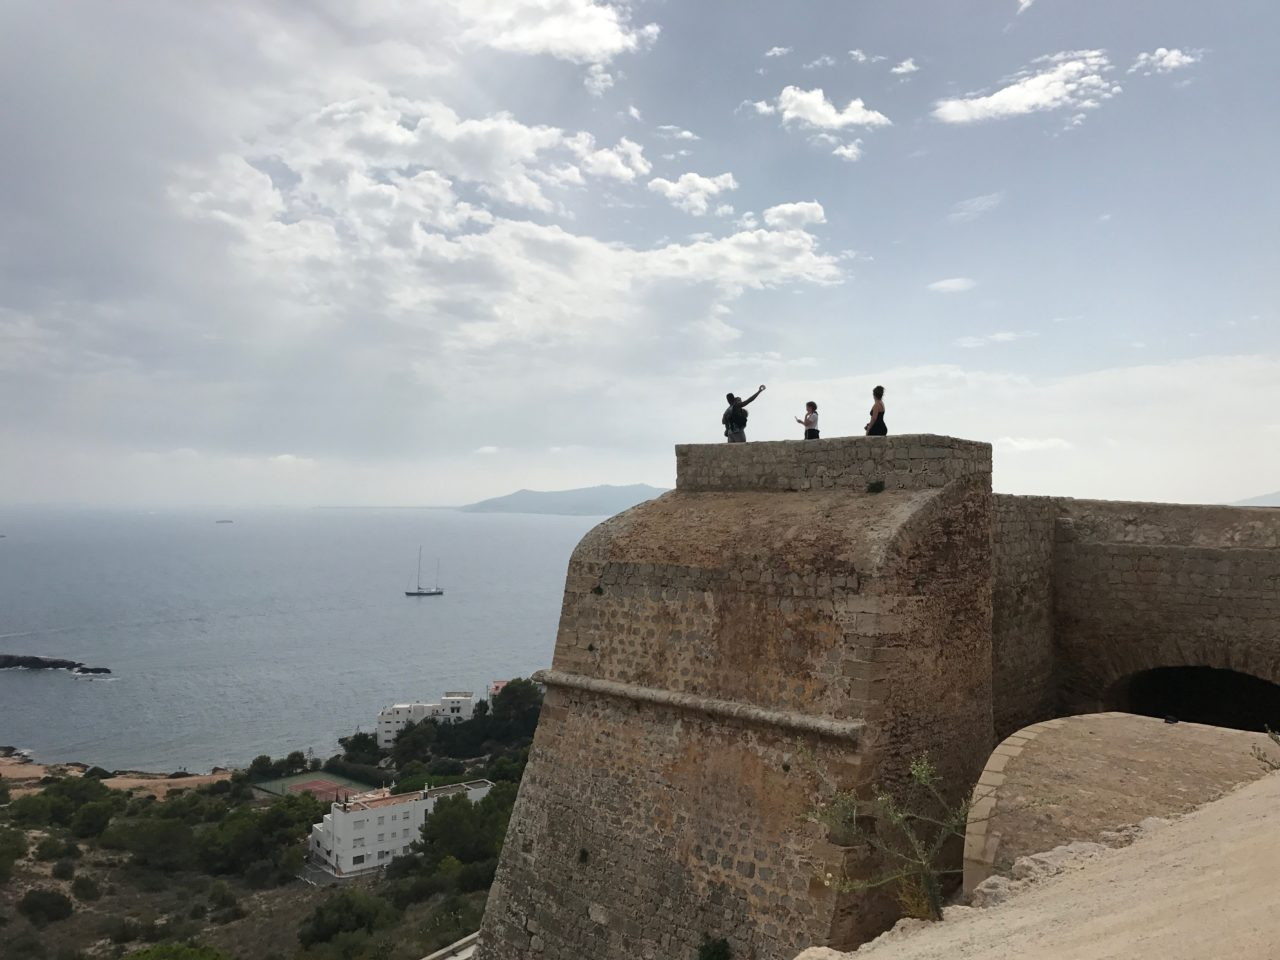 Castle Wall With Outlook And People Taking Selfies